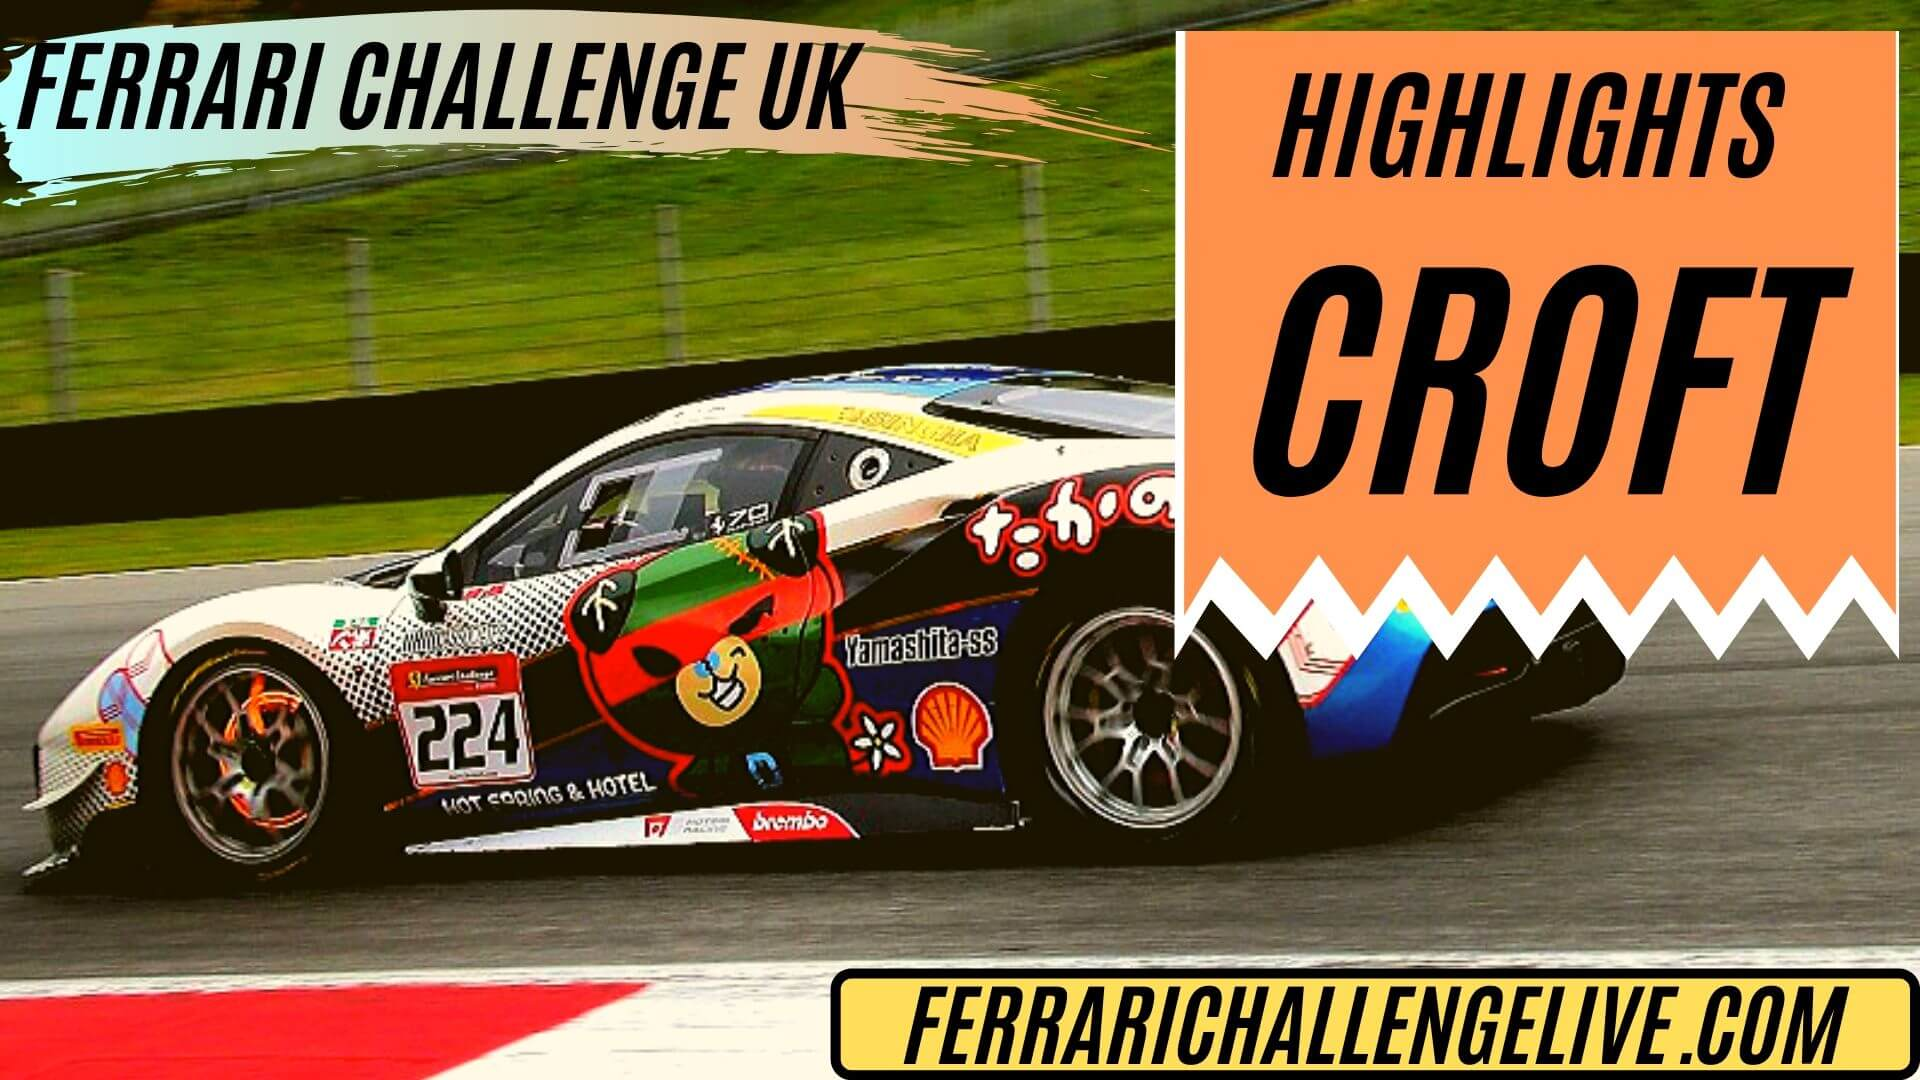 Croft Ferrari Challenge UK Highlights 2019